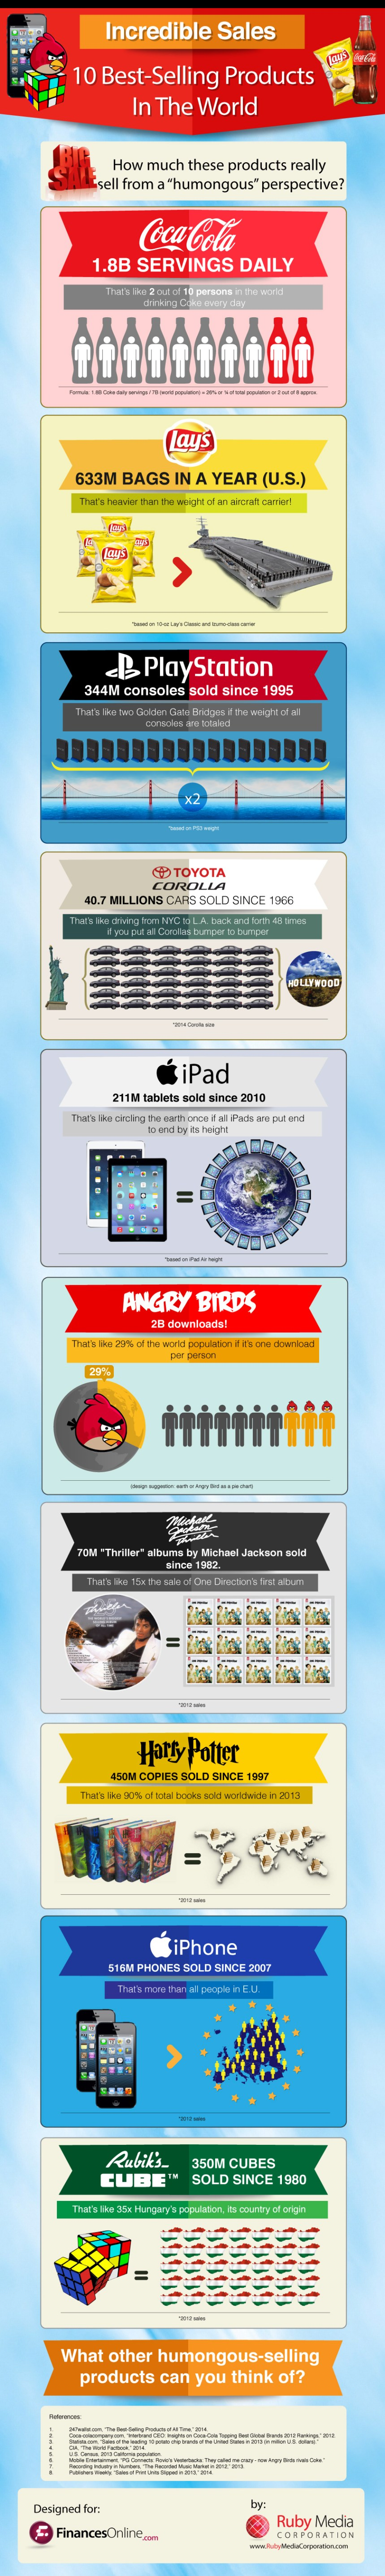 Comparison of World's Best-selling Products: Angry Birds Is A Game With Insance Sale Figures